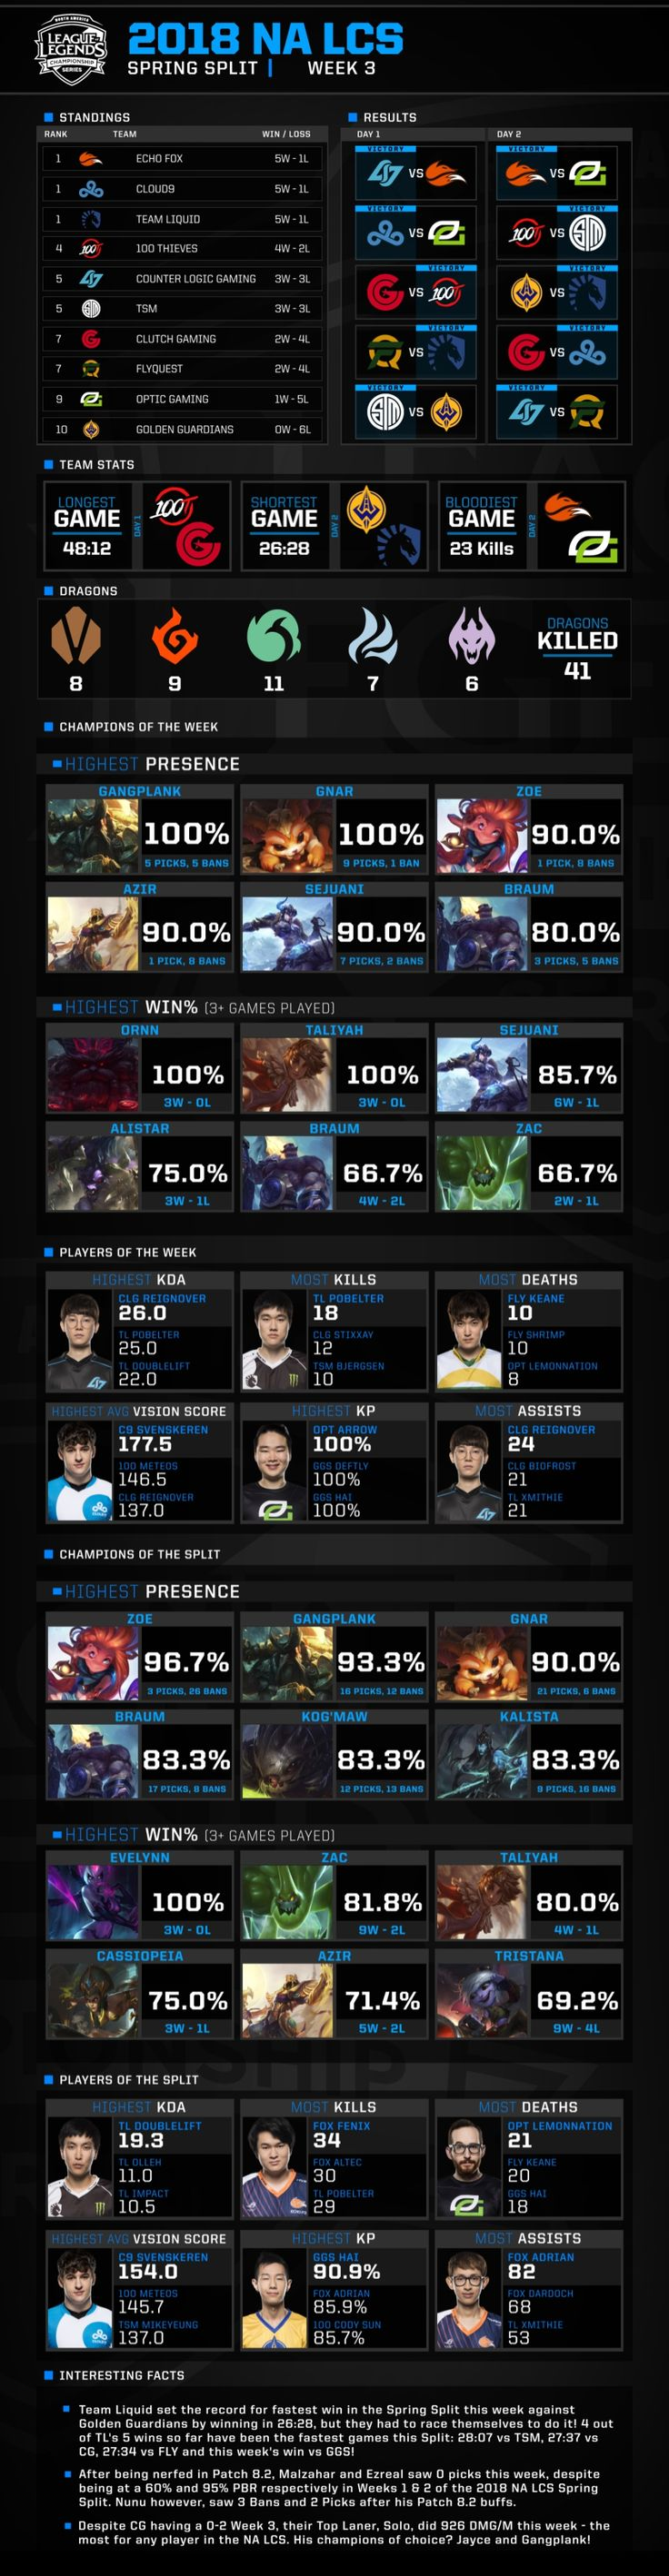 2018 NA LCS Stats Breakdown Week 3 https://riot-web-cdn.s3-us-west-1.amazonaws.com/lolesports/s3fs-public/styles/centered/public/nalcs_infographic_week3_v3.jpg?hvVu71ayQtt73hgDkNpQsuNU7sg6i2RY&itok=k9JDzjHb #games #LeagueOfLegends #esports #lol #riot #Worlds #gaming